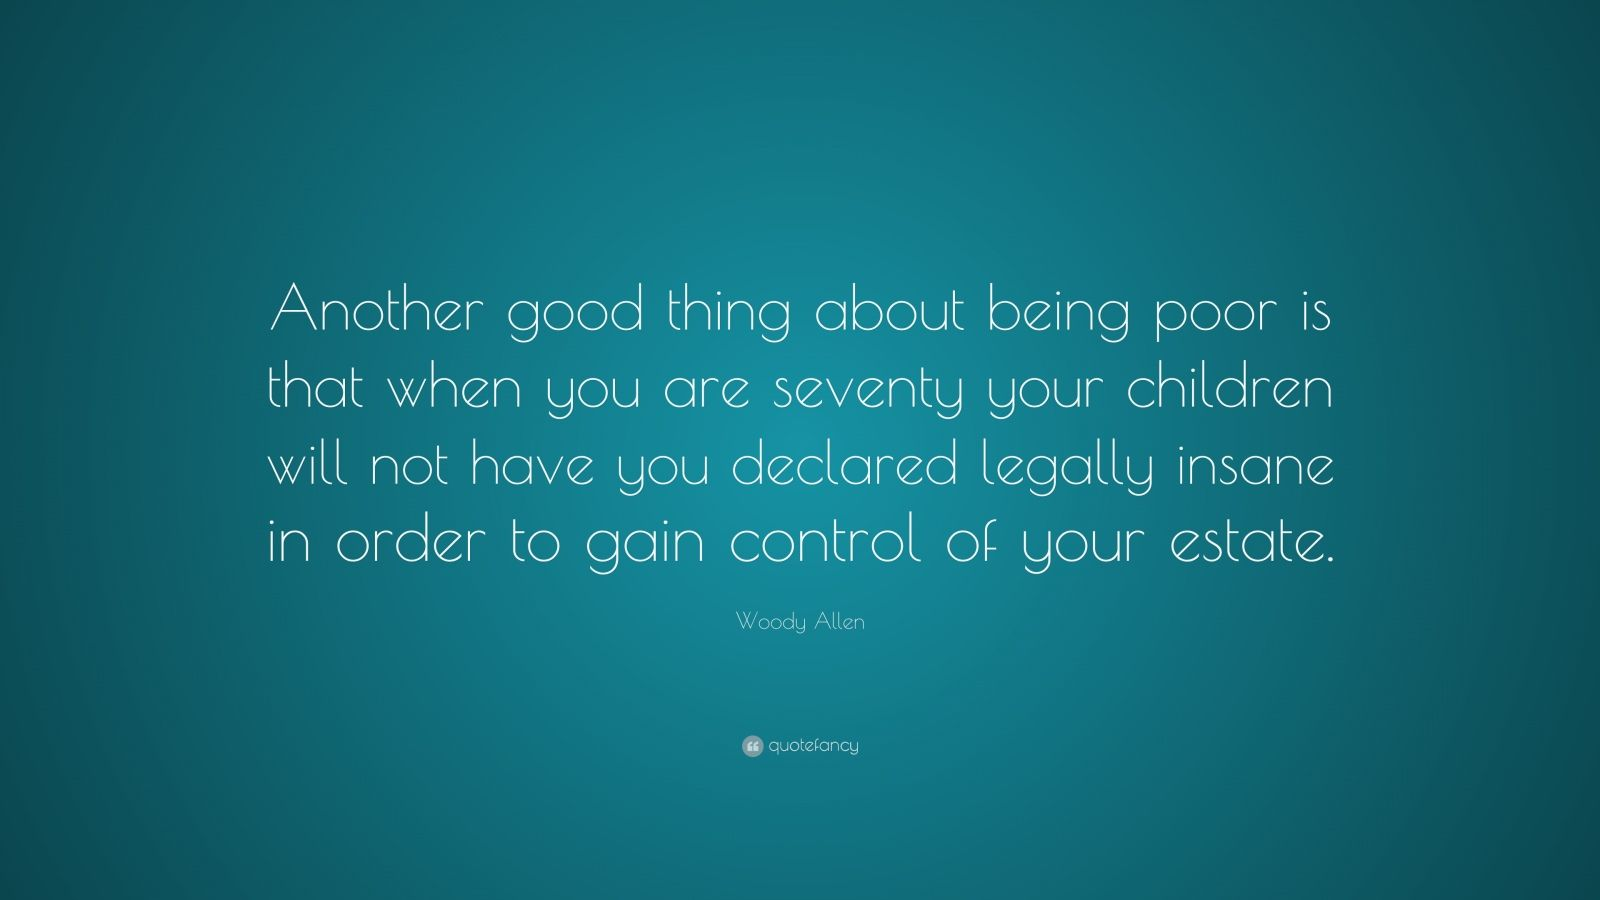 """Woody Allen Quote: """"Another good thing about being poor is that when you are seventy your children will not have you declared legally insane in order to gain control of your estate."""""""